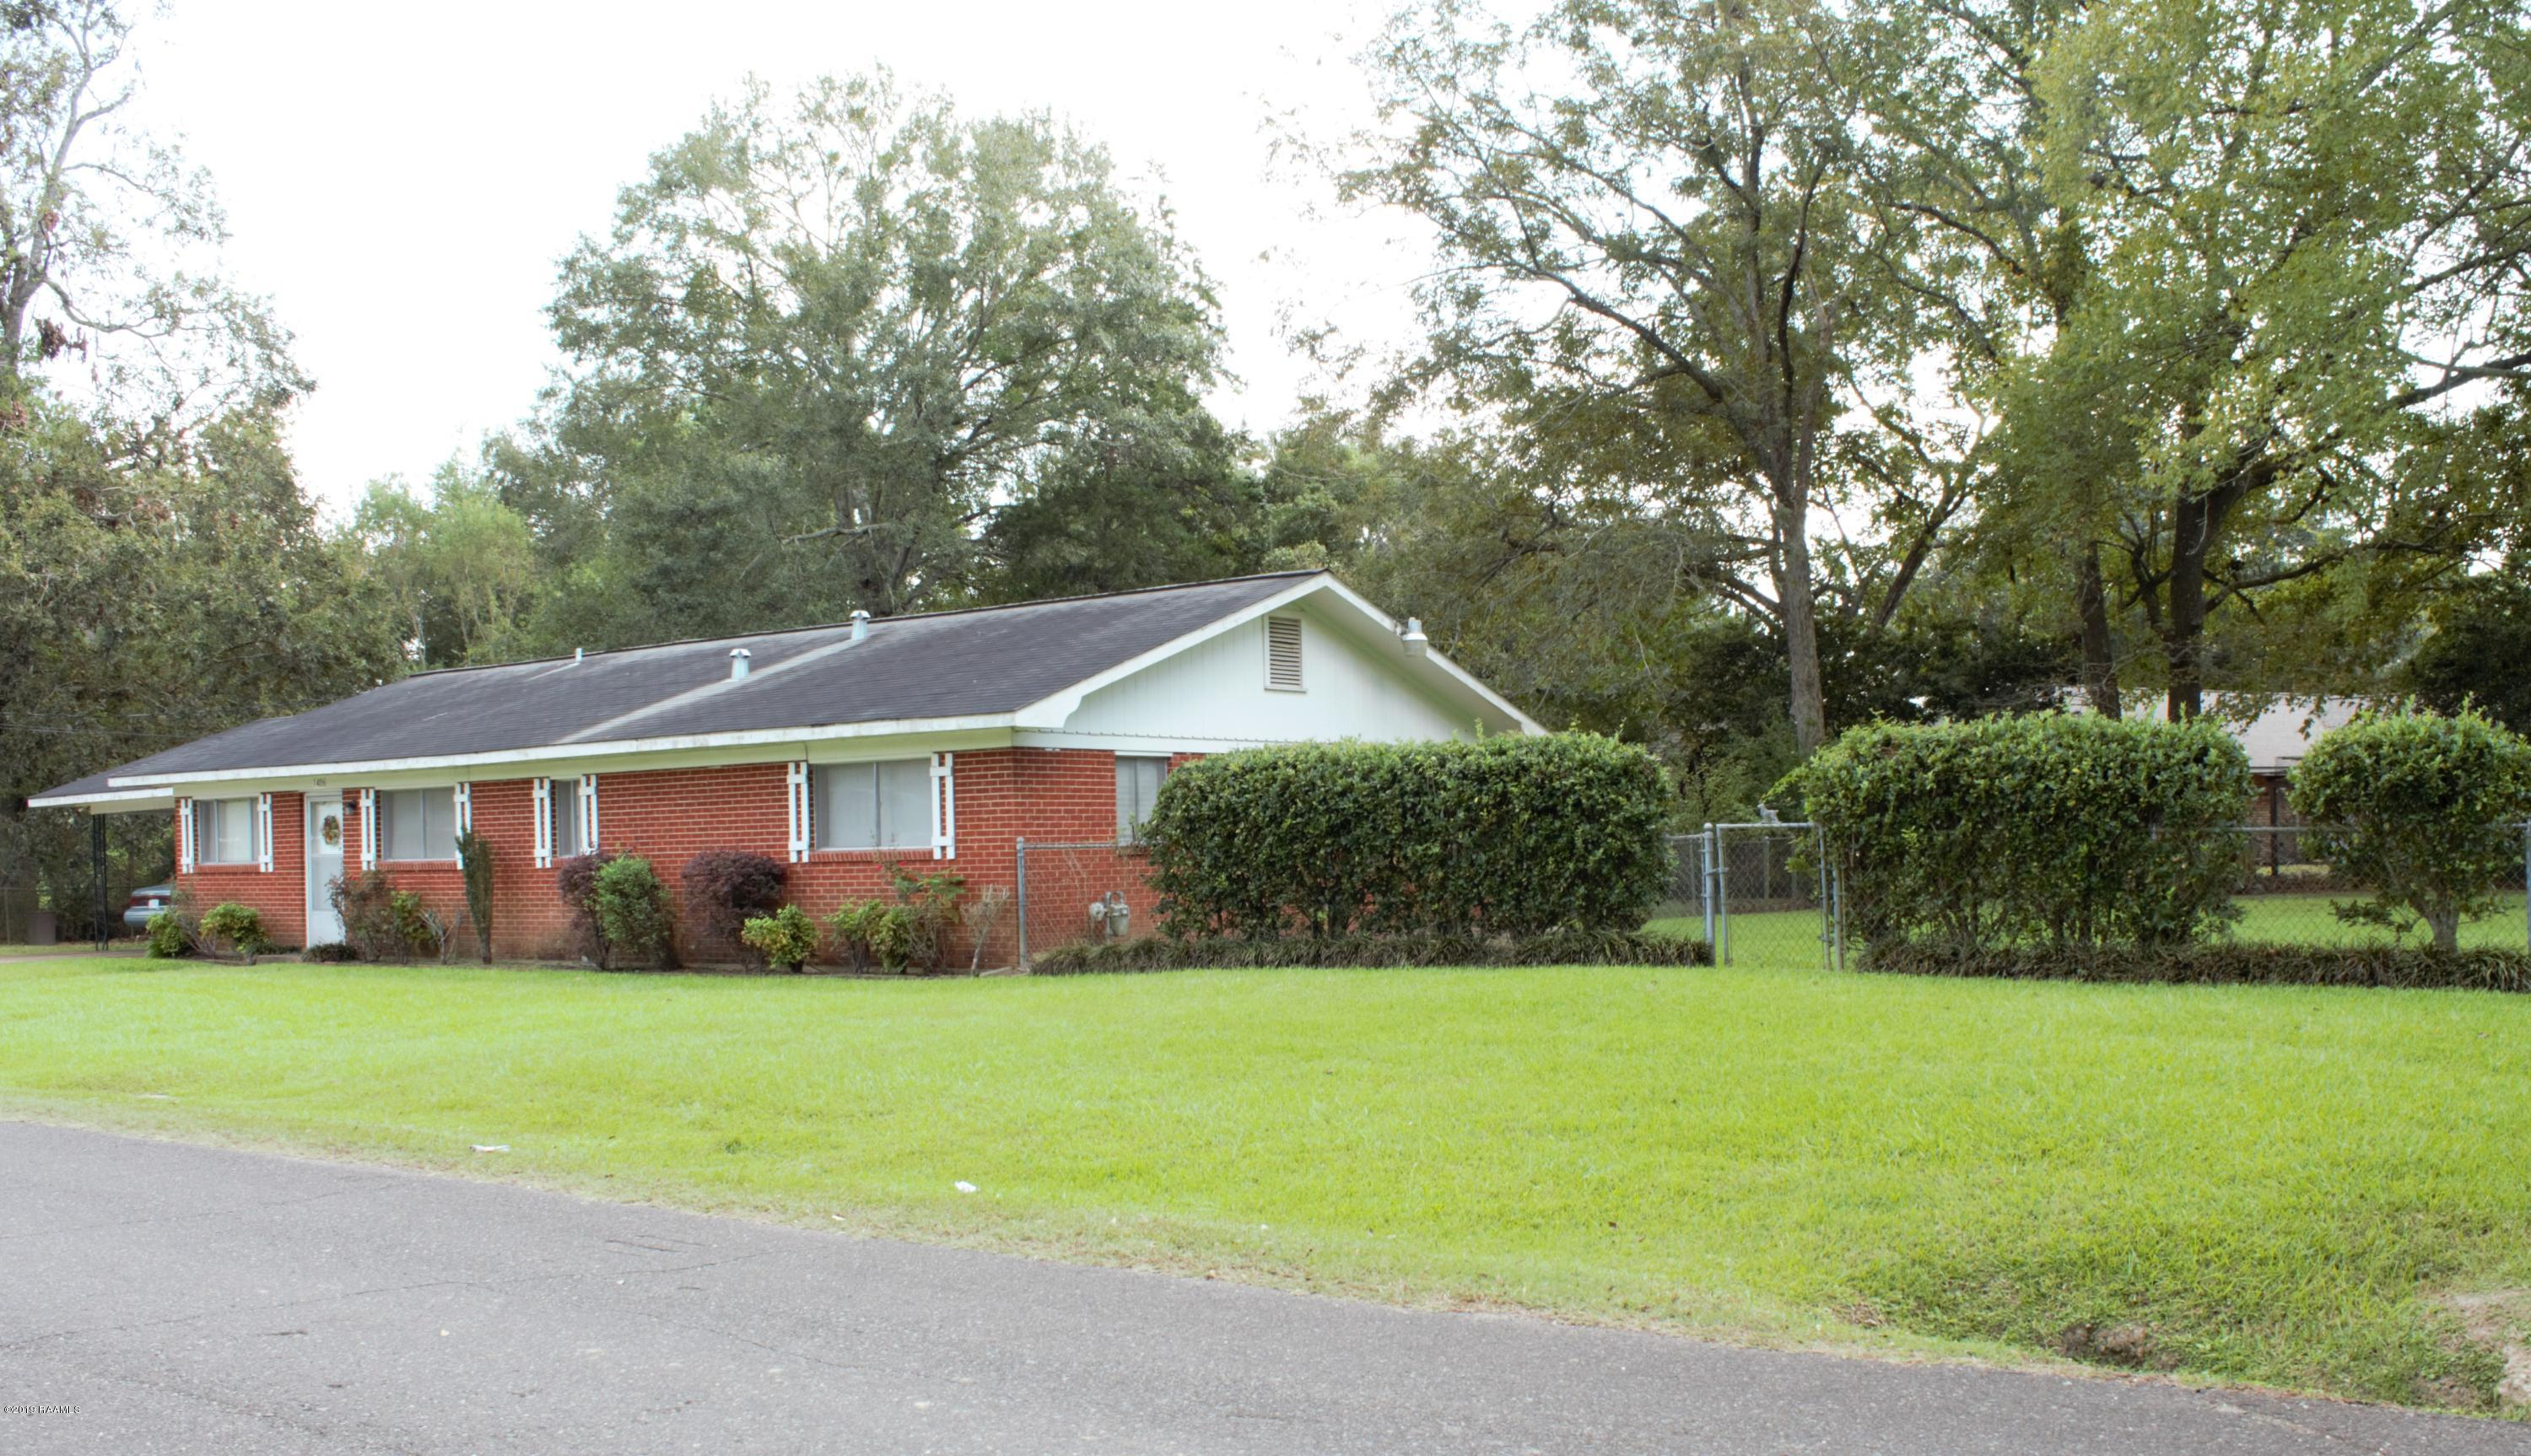 1406 Lincoln Road W, Ville Platte, LA 70586 Photo #2